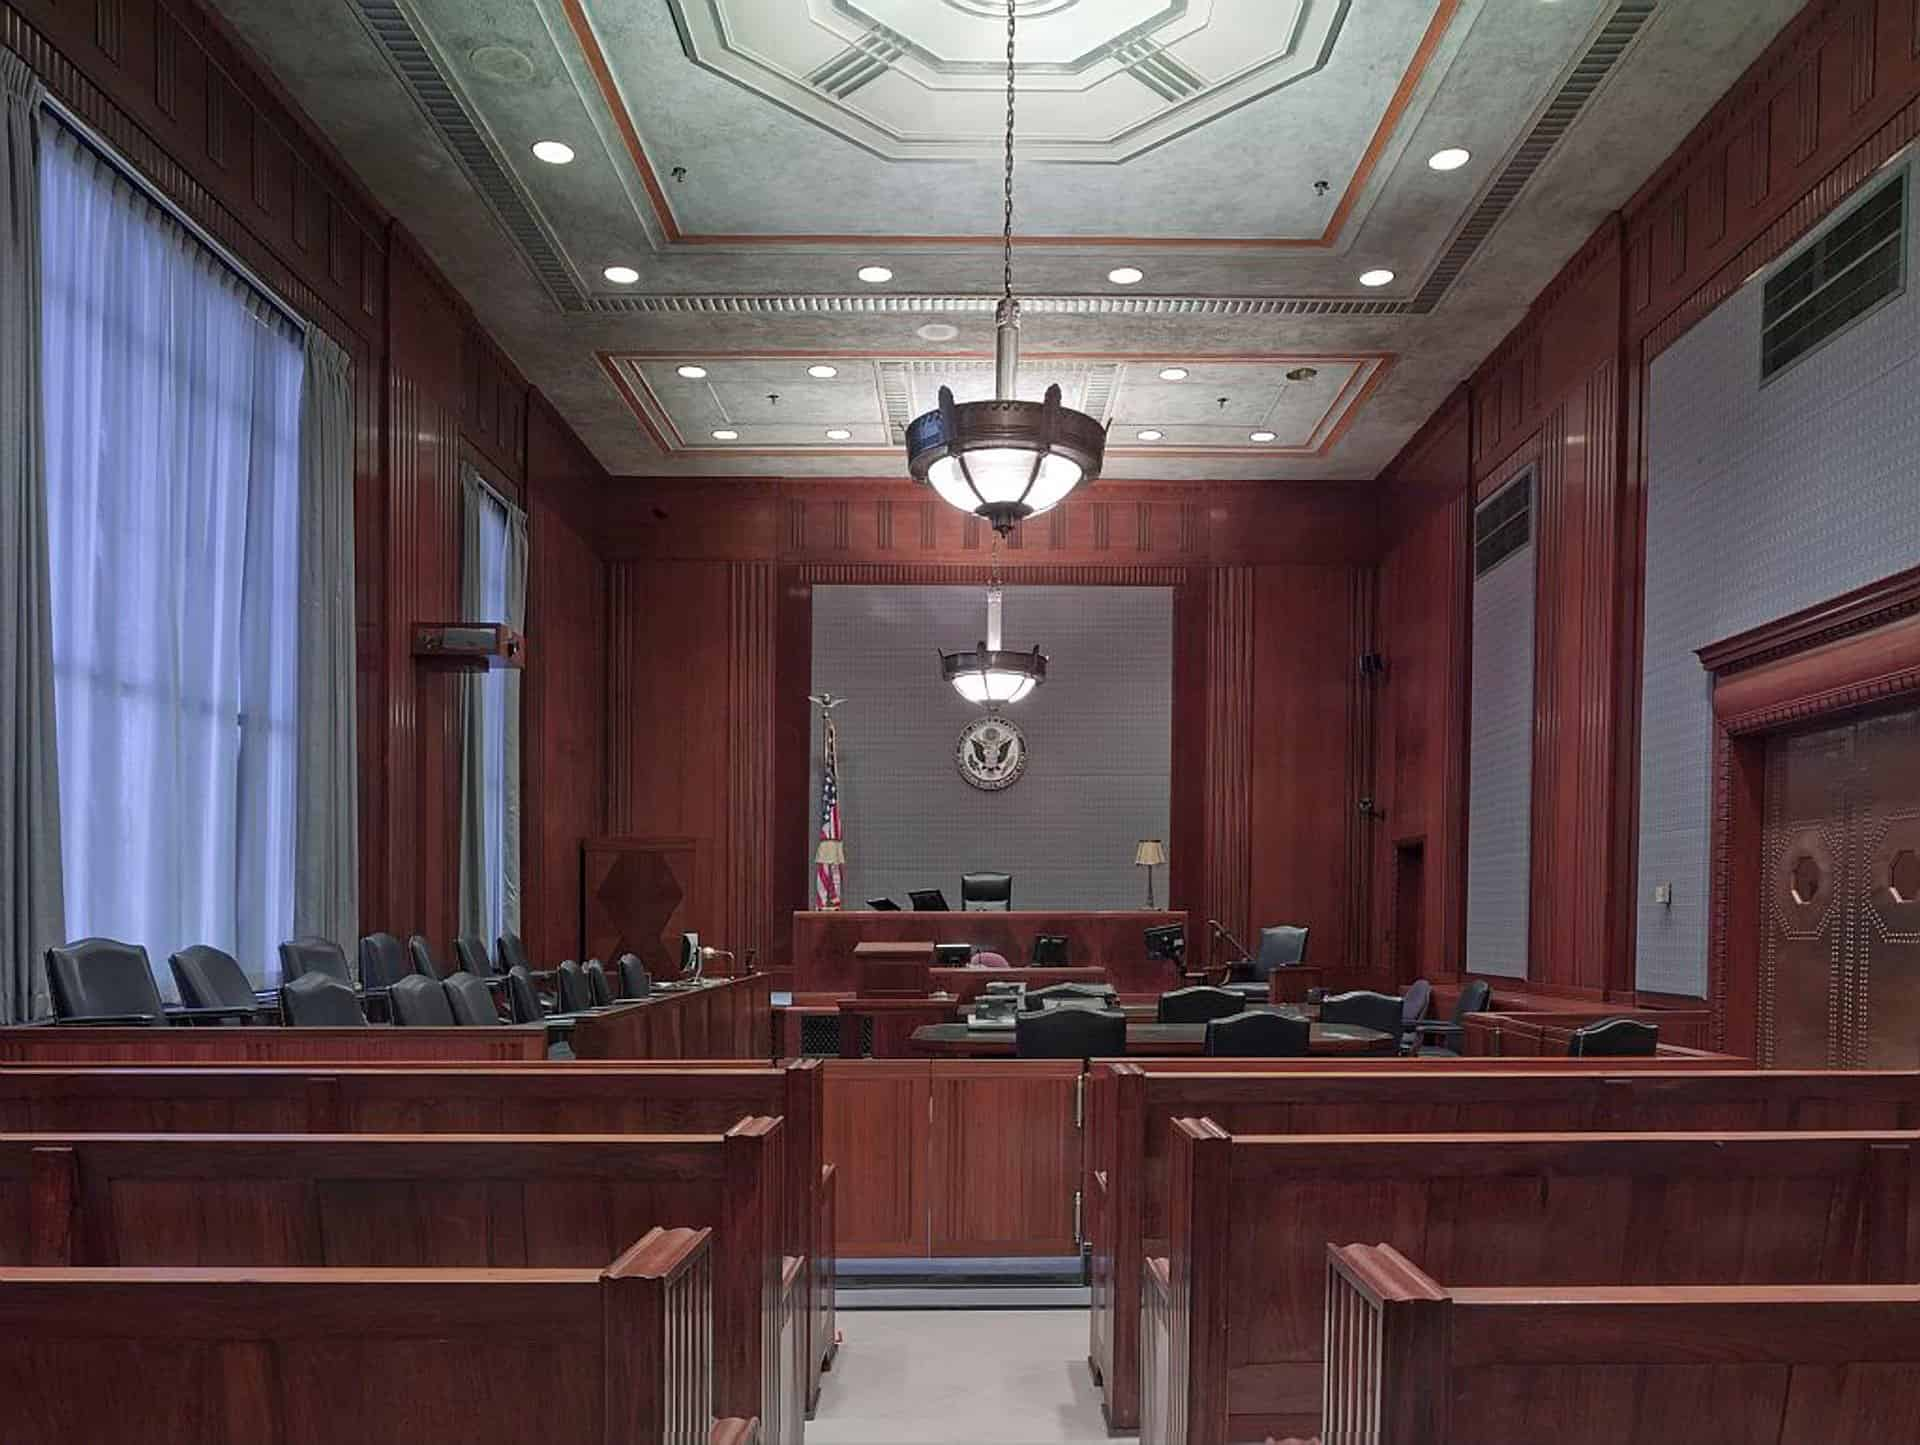 Trial-Personal-Injury-Lawyer-Attorney-Jury-Court-Courtroom-Lawsuit-Sue-Injured-Hurt-Settlement-Money-Award